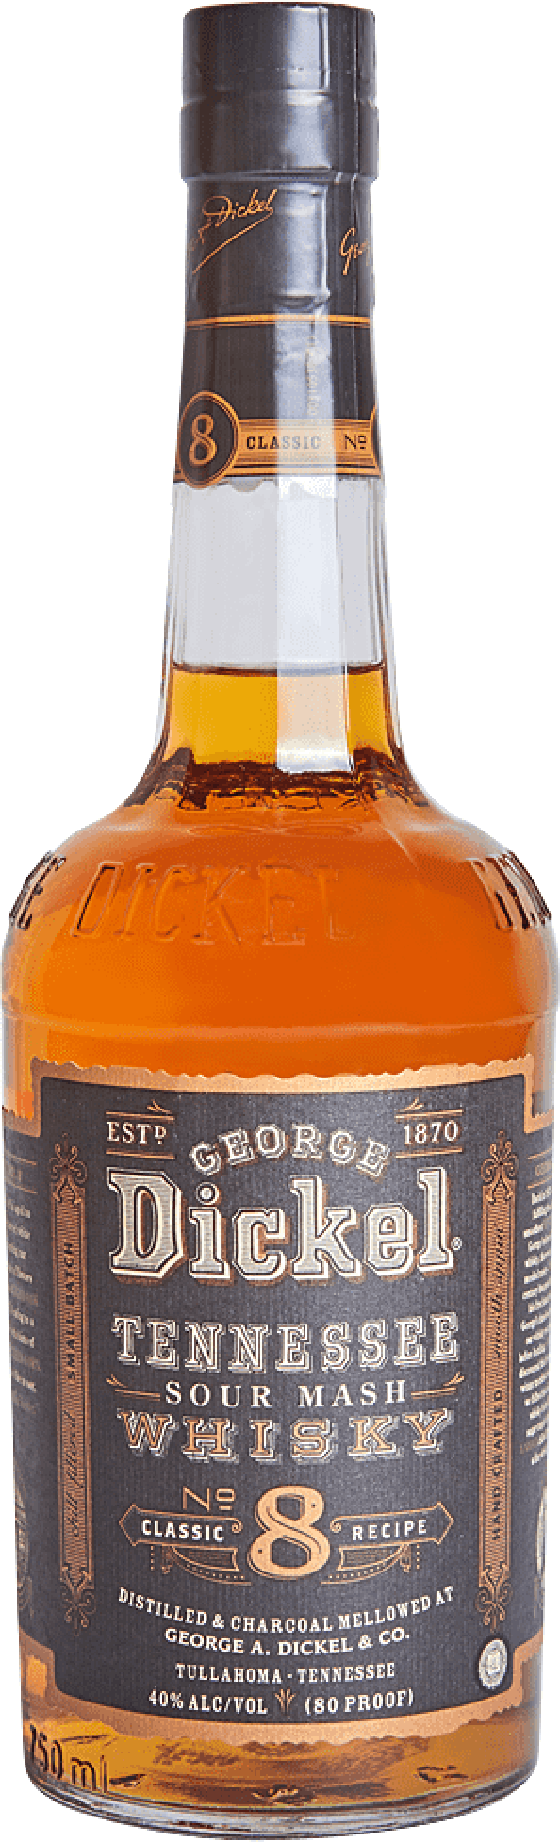 9. George Dickel Classic No.8 Sour Mash Tennessee Whiskey